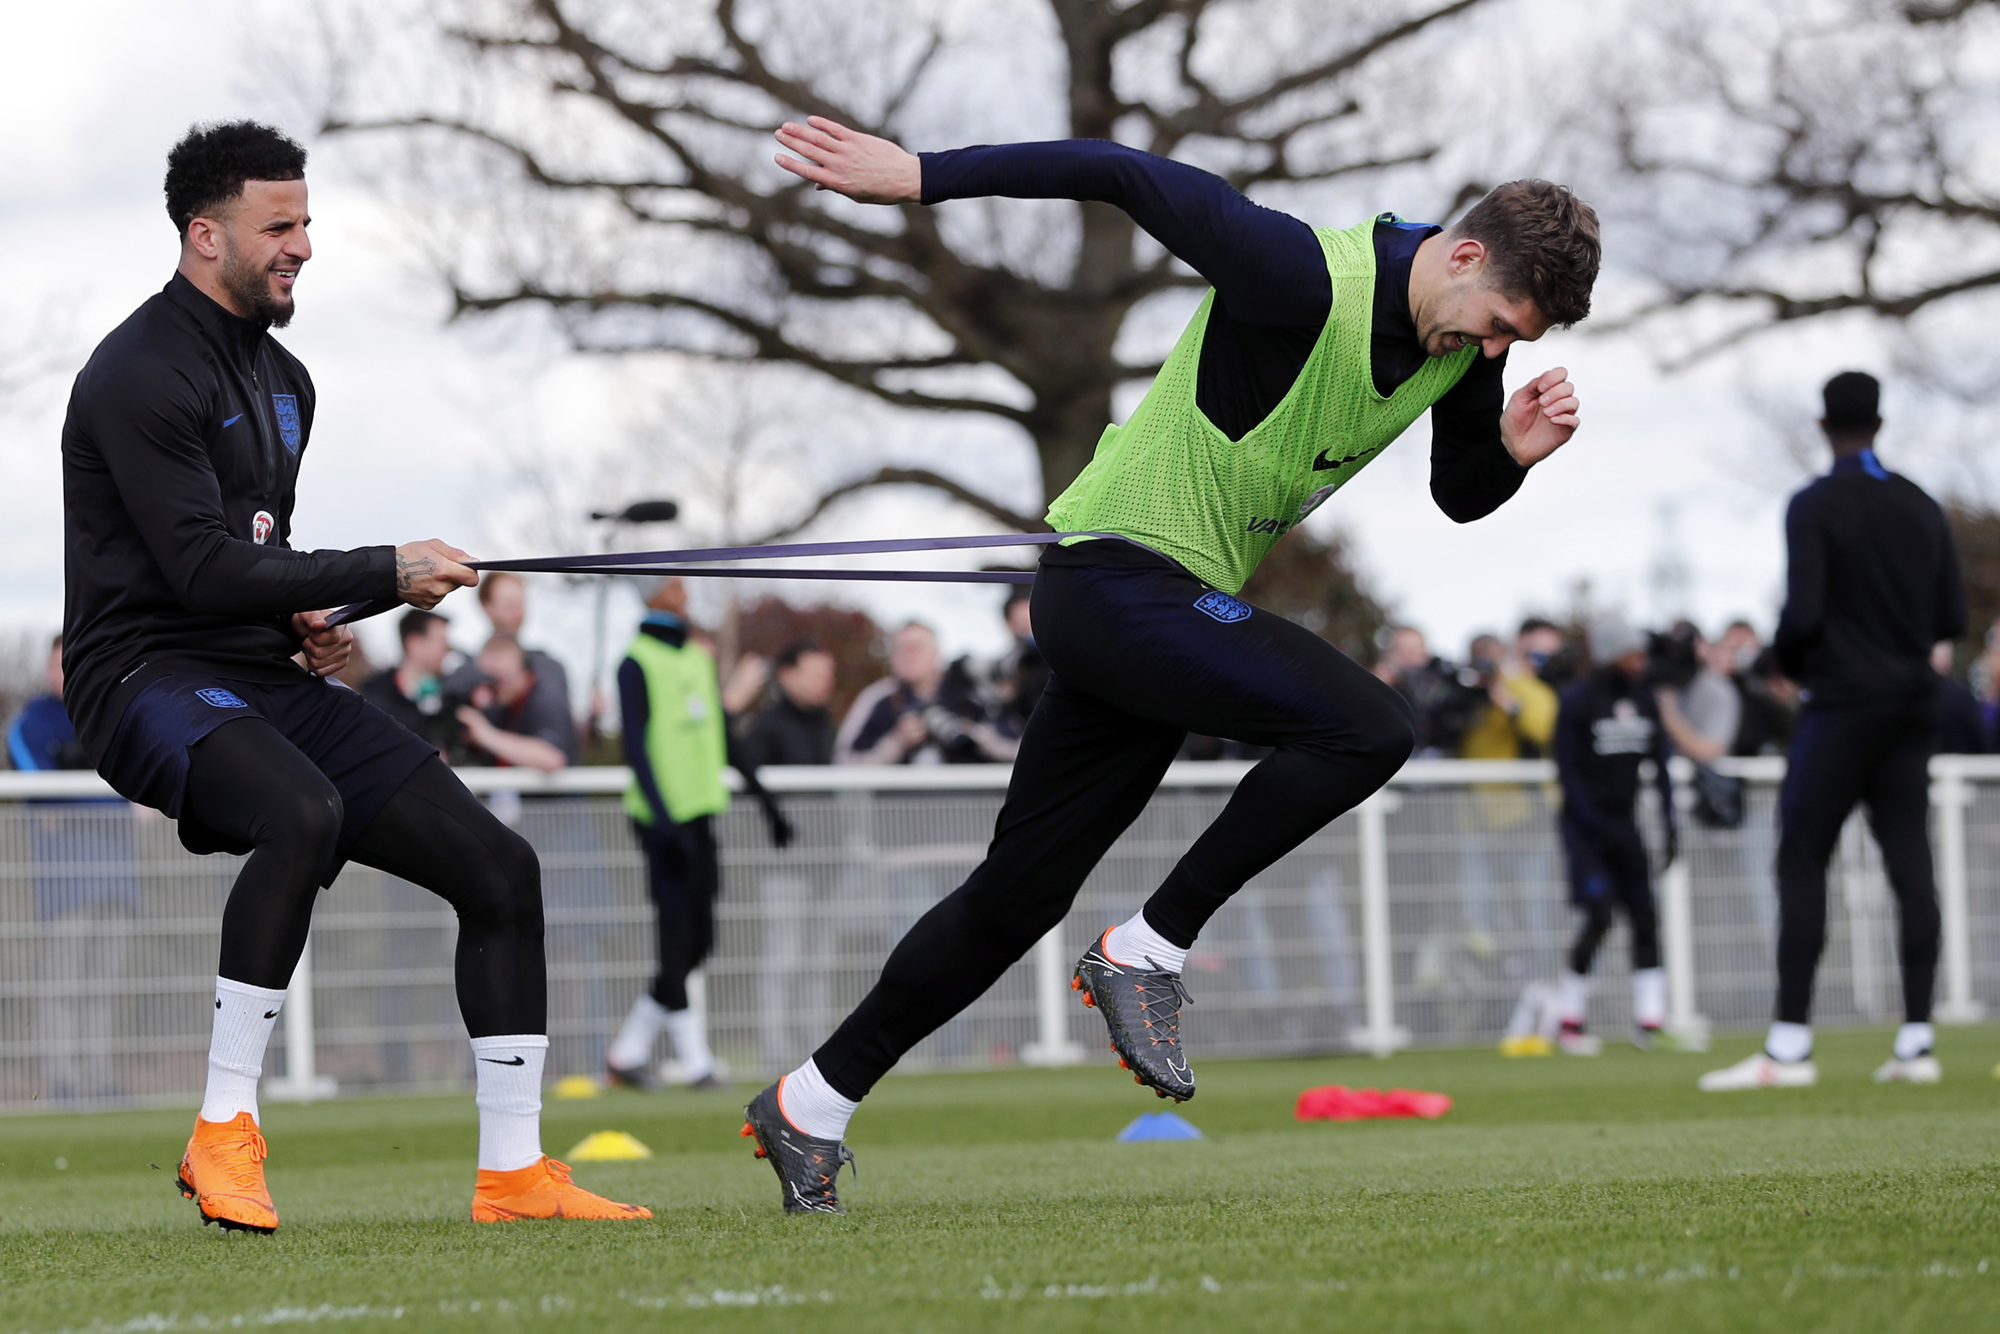 England Squad train for World Cup in Staffordshire